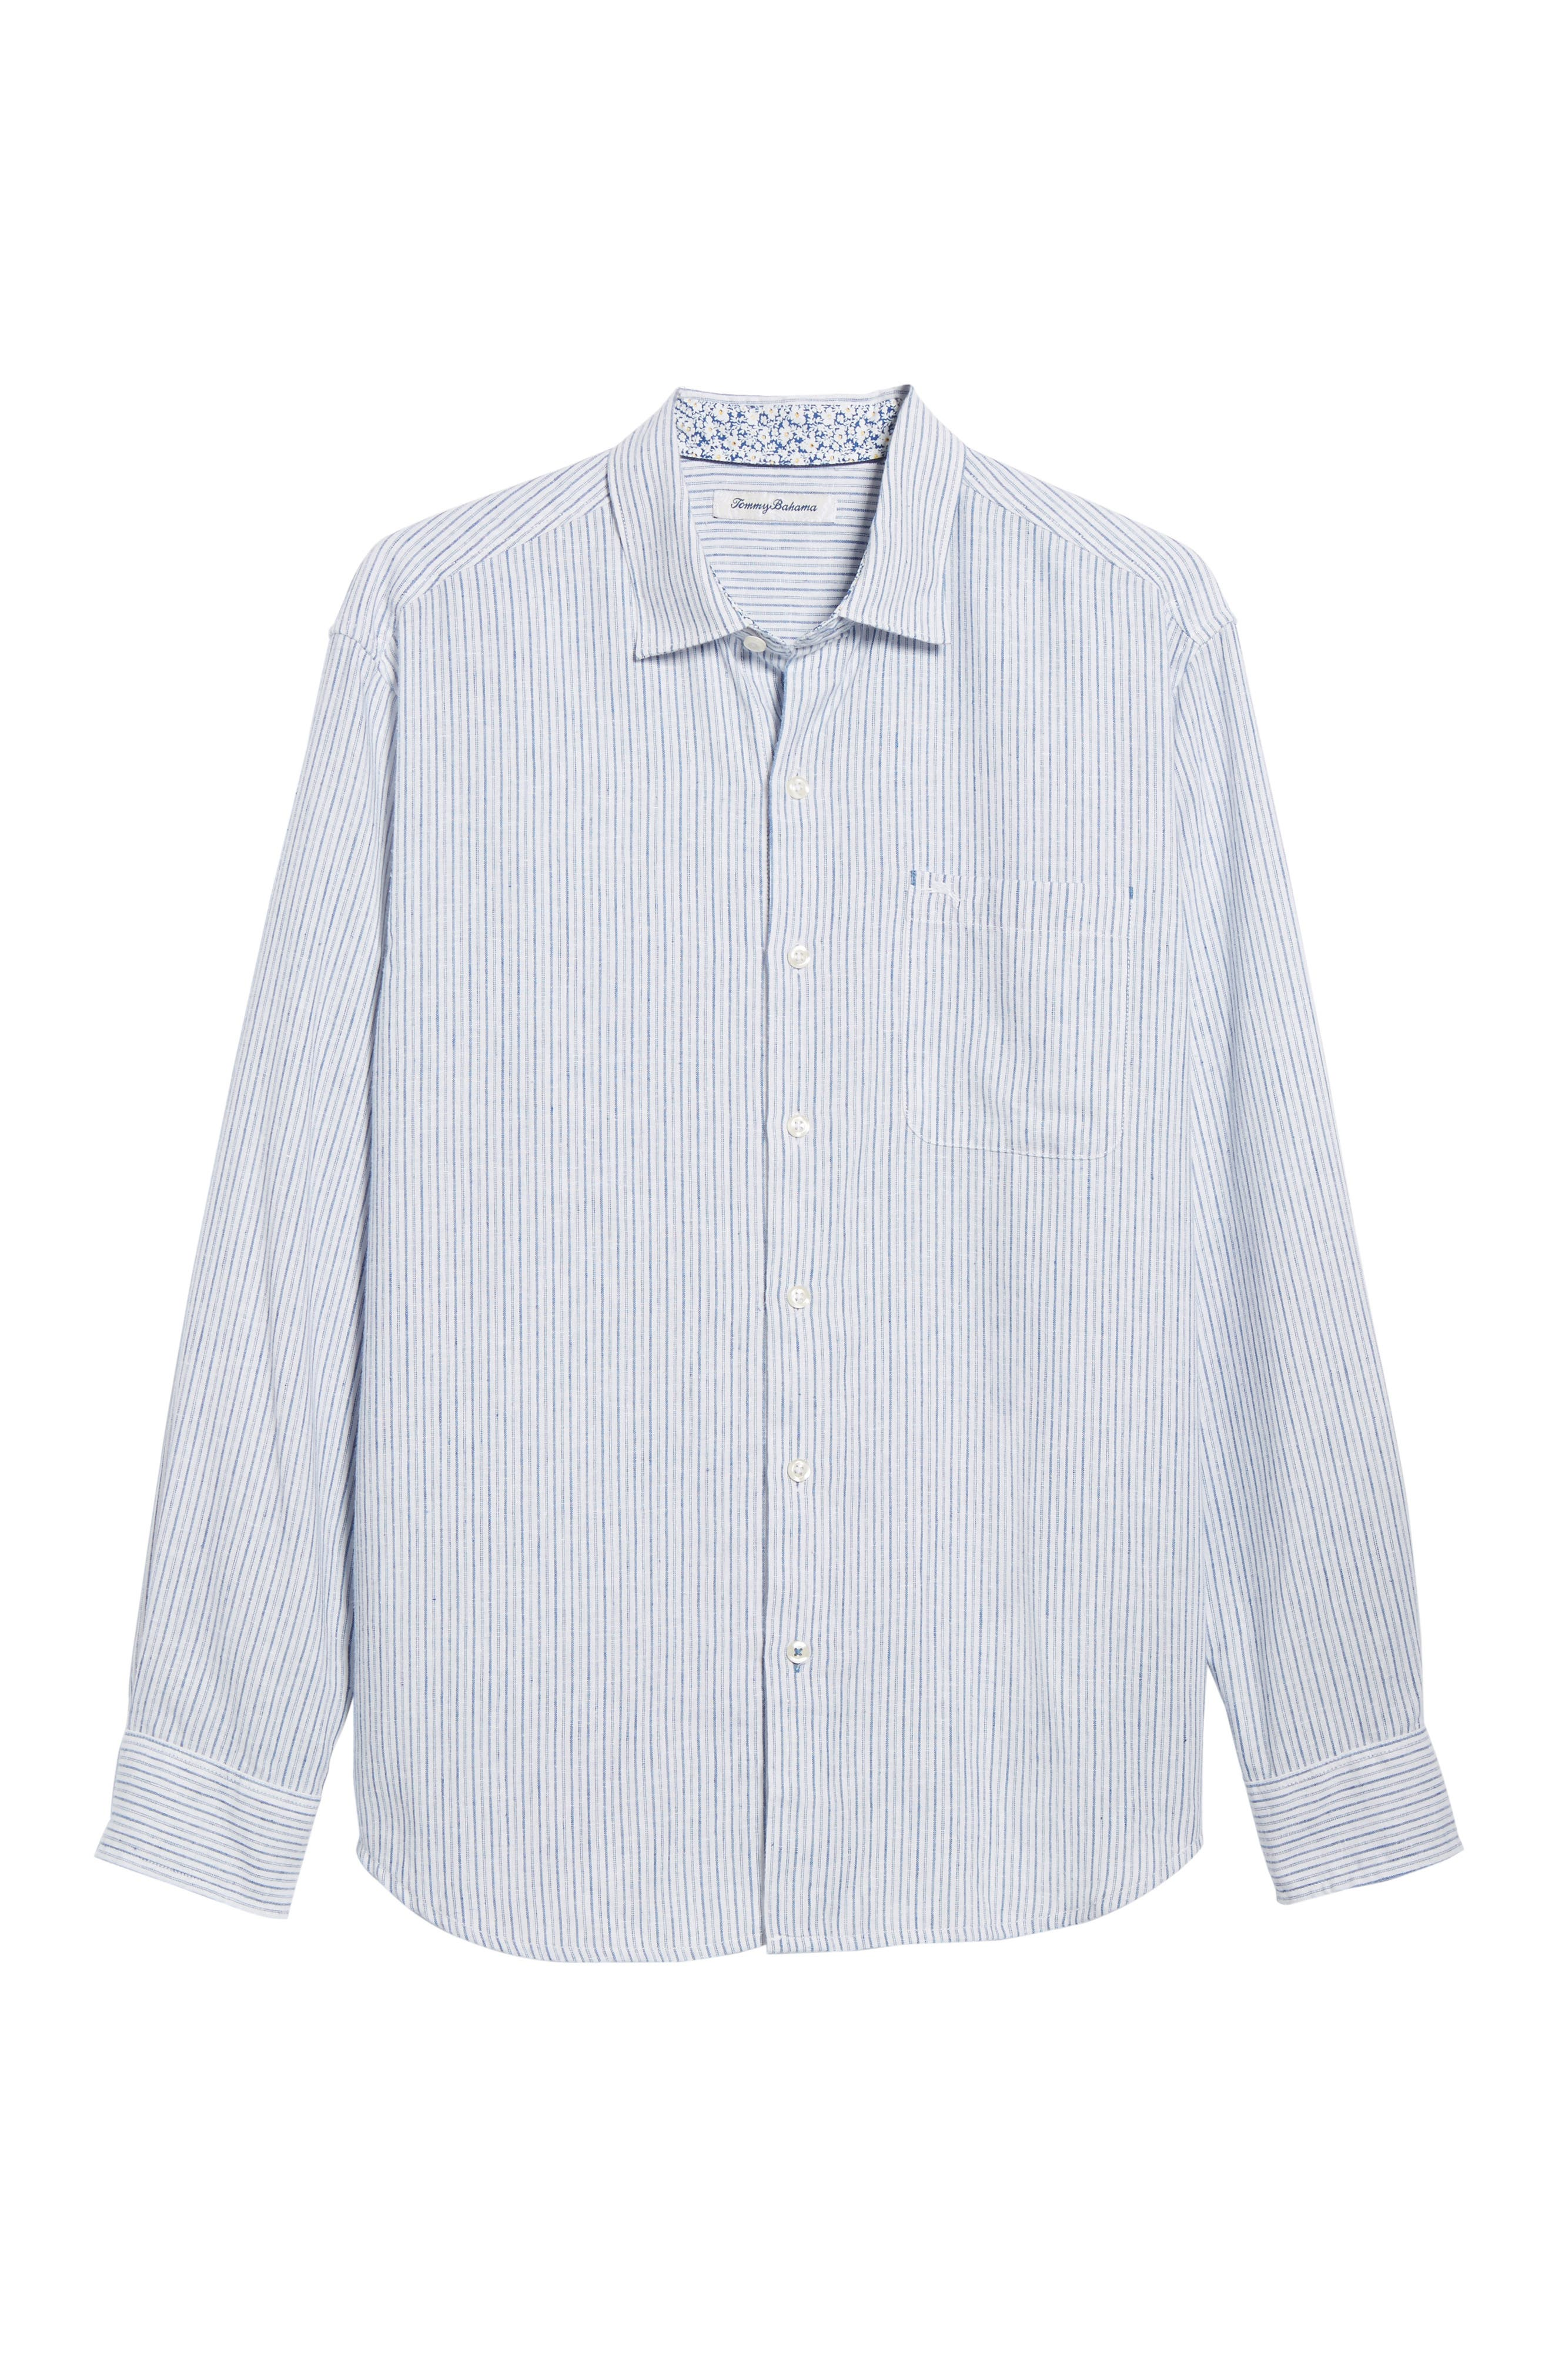 Bungalow Stripe Regular Fit Linen Blend Sport Shirt,                             Alternate thumbnail 6, color,                             Galaxy Blue